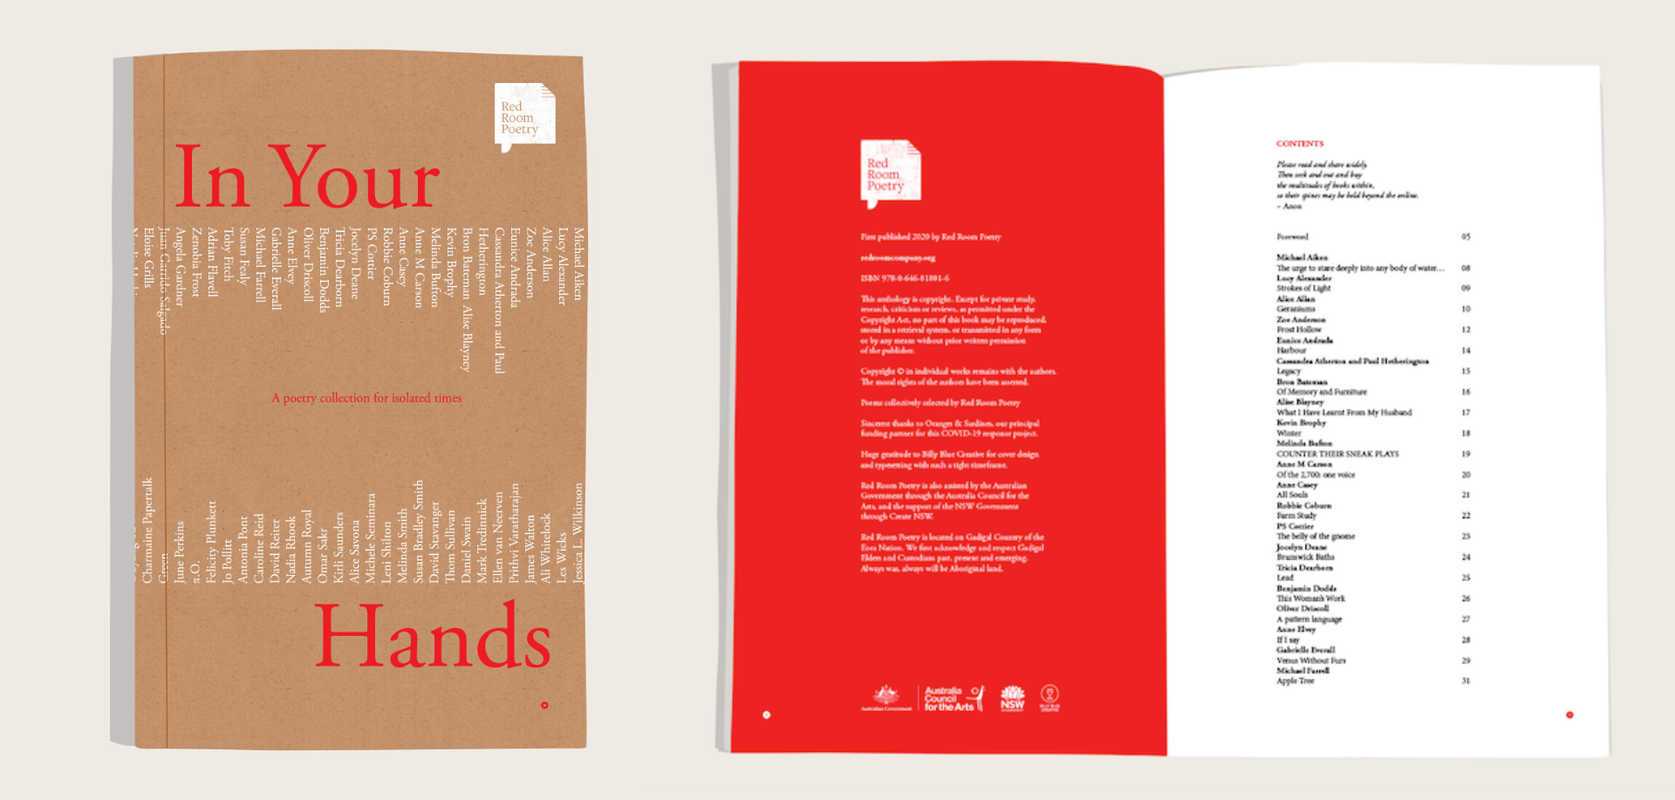 In_Your_Hands_free_digital_collection_hero_Red_Room_Poetry_1.png